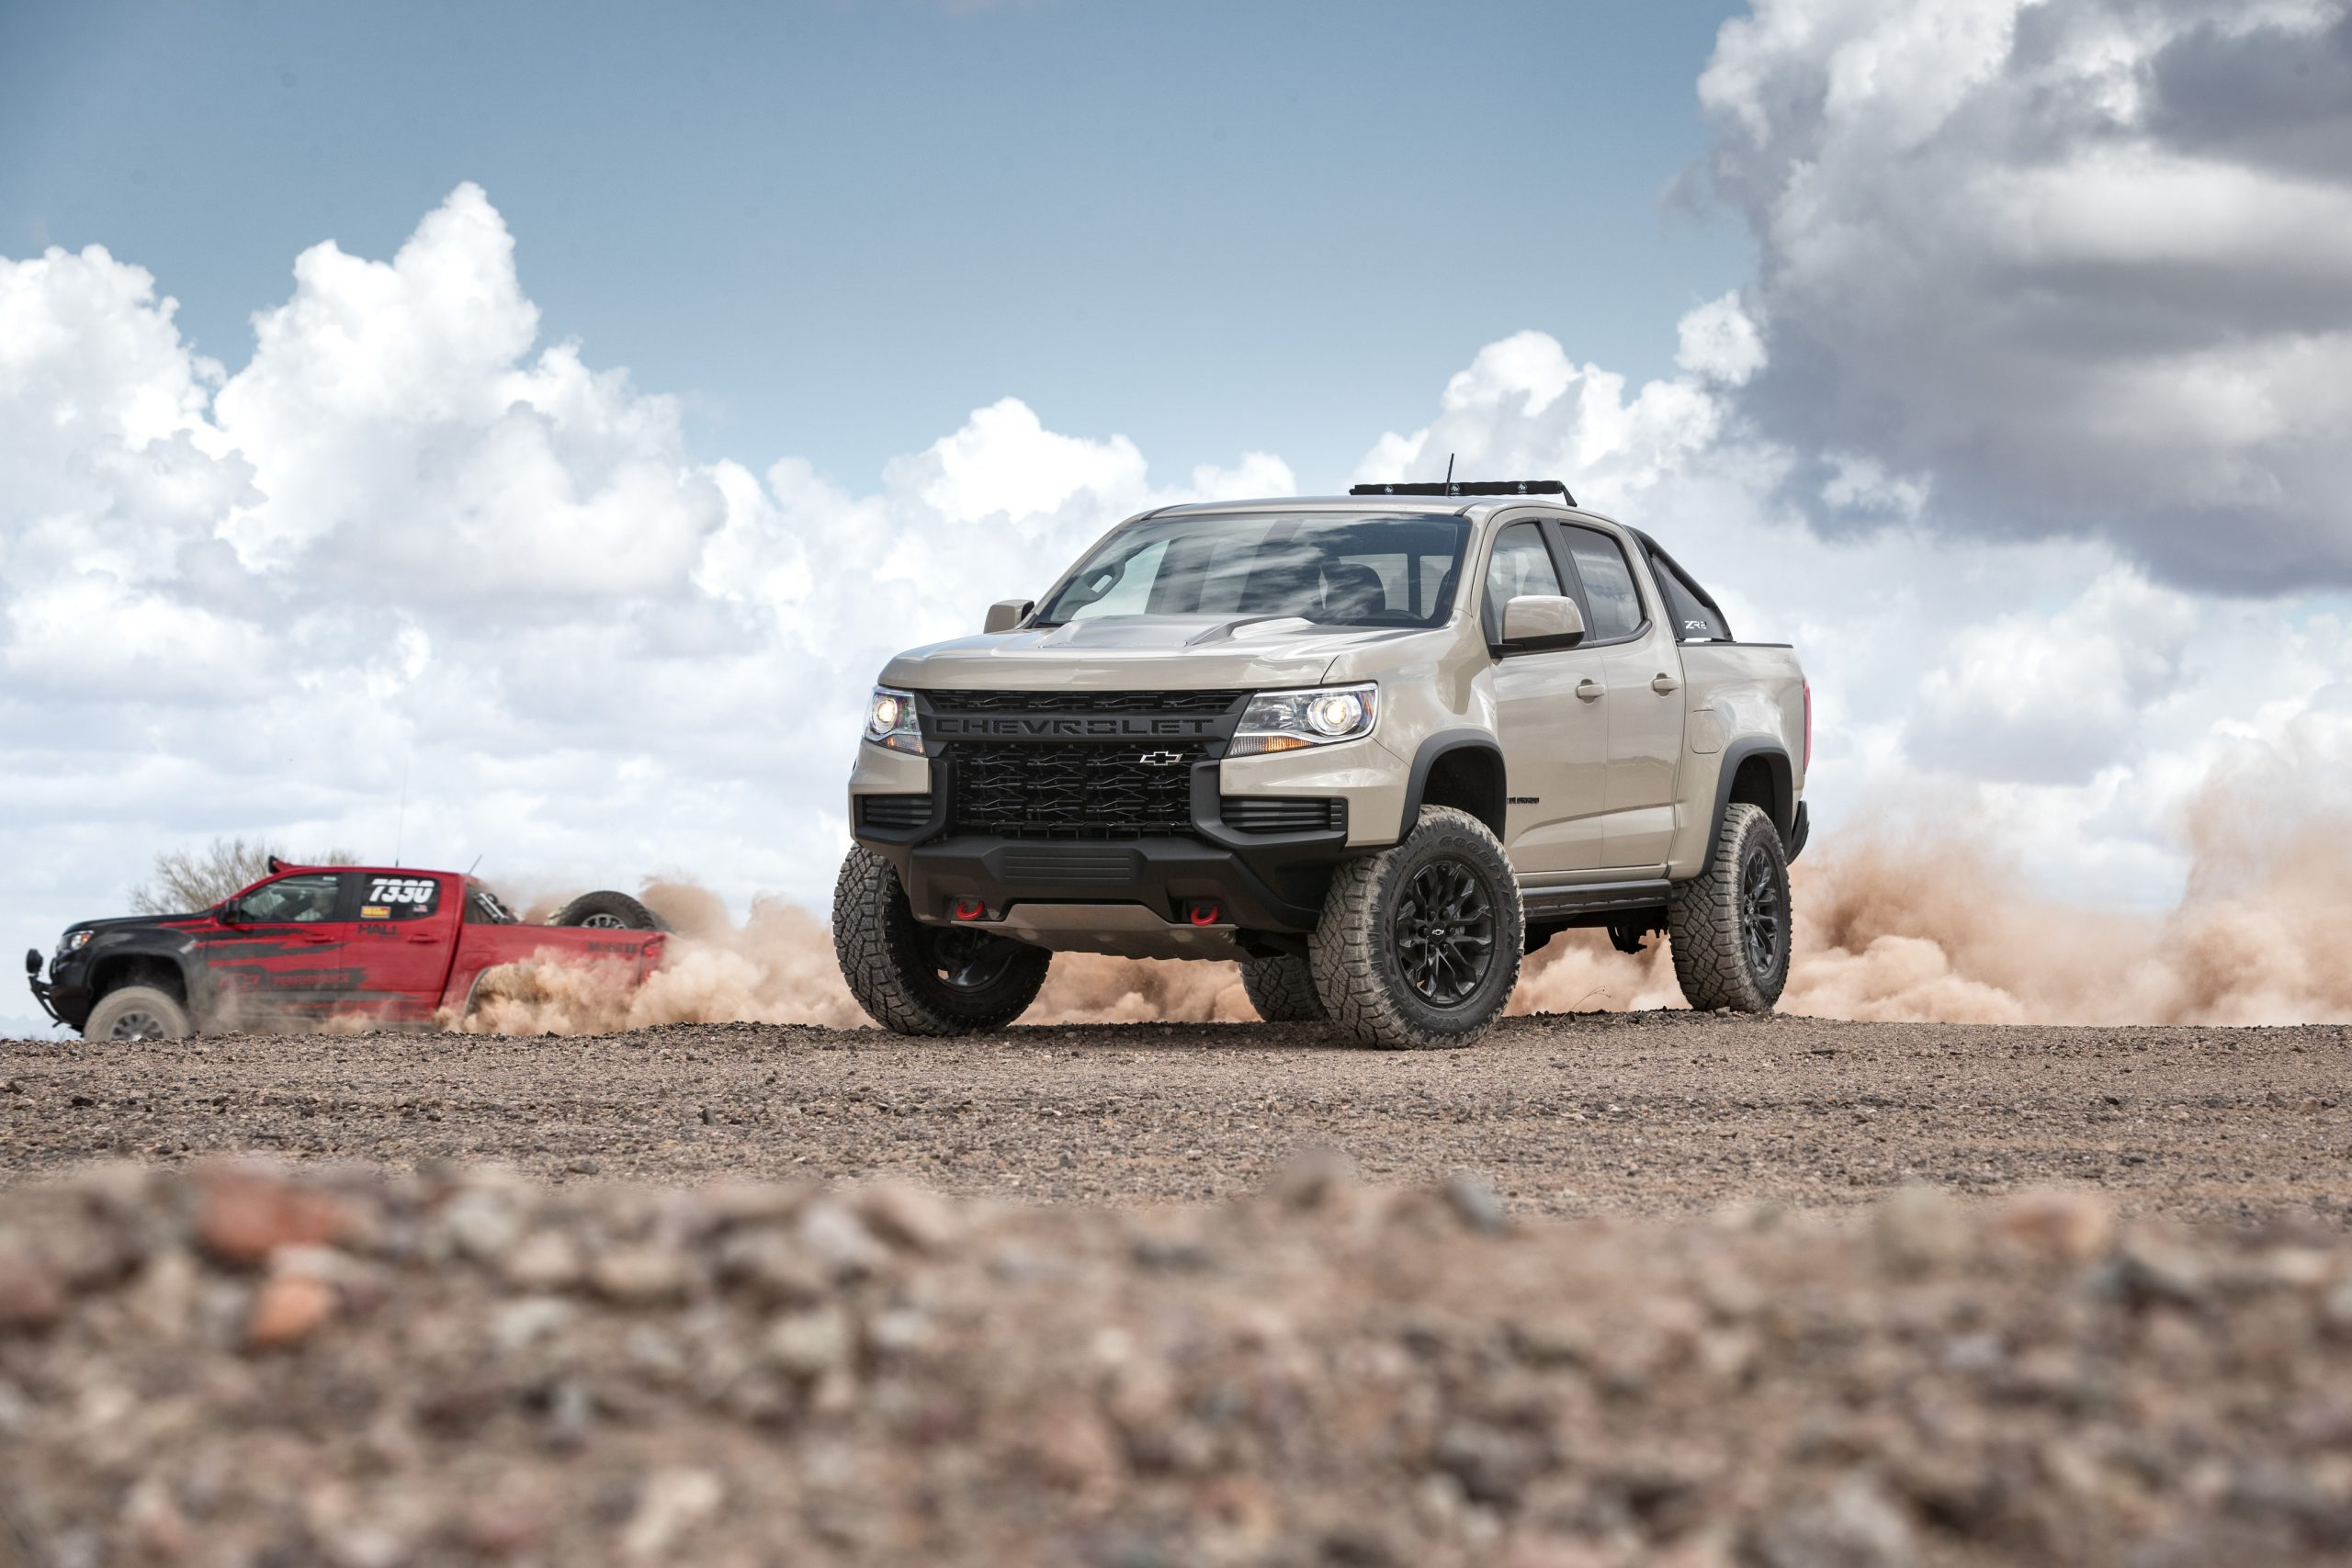 The New-Look 2021 Chevy Colorado Will Change Things Up 2021 Chevy Colorado Z71 Pictures, Parts, Pics